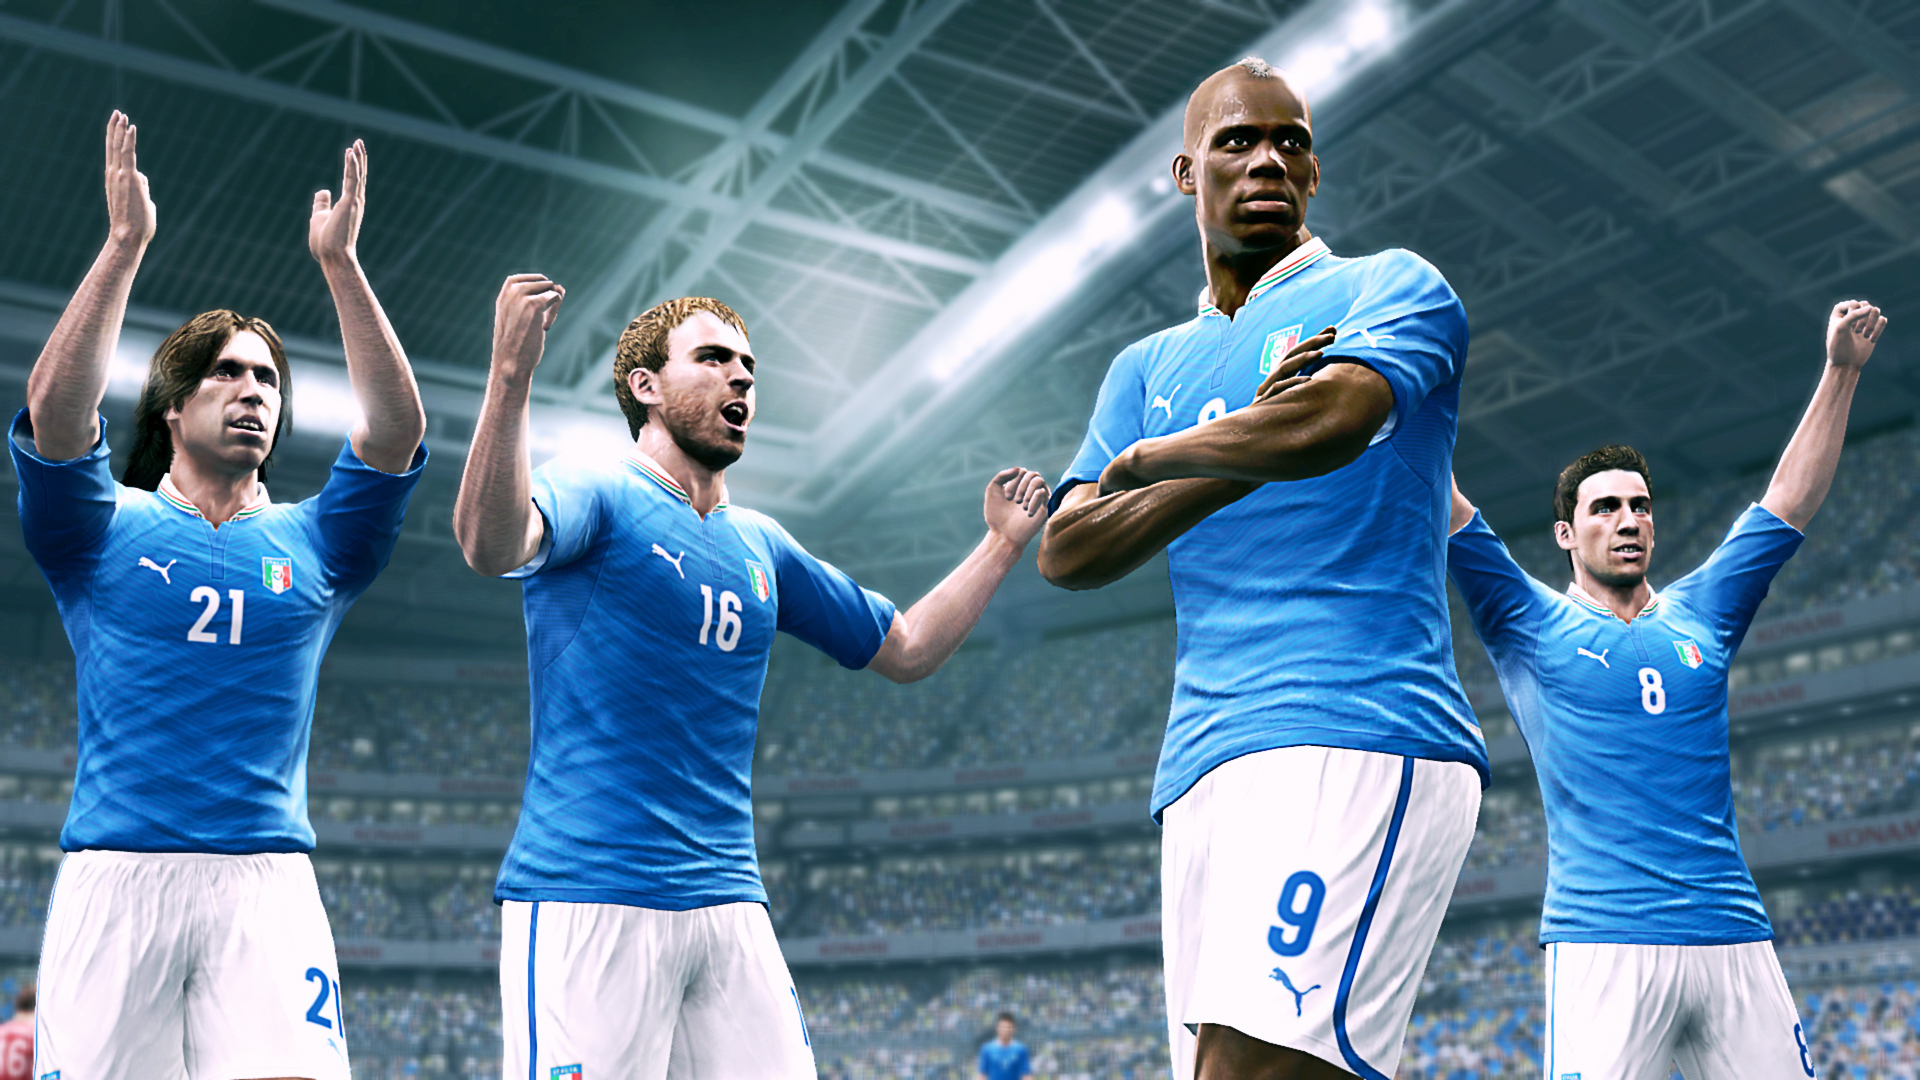 Konami brings you PES 2014 with New Features and Brand-new Engine!